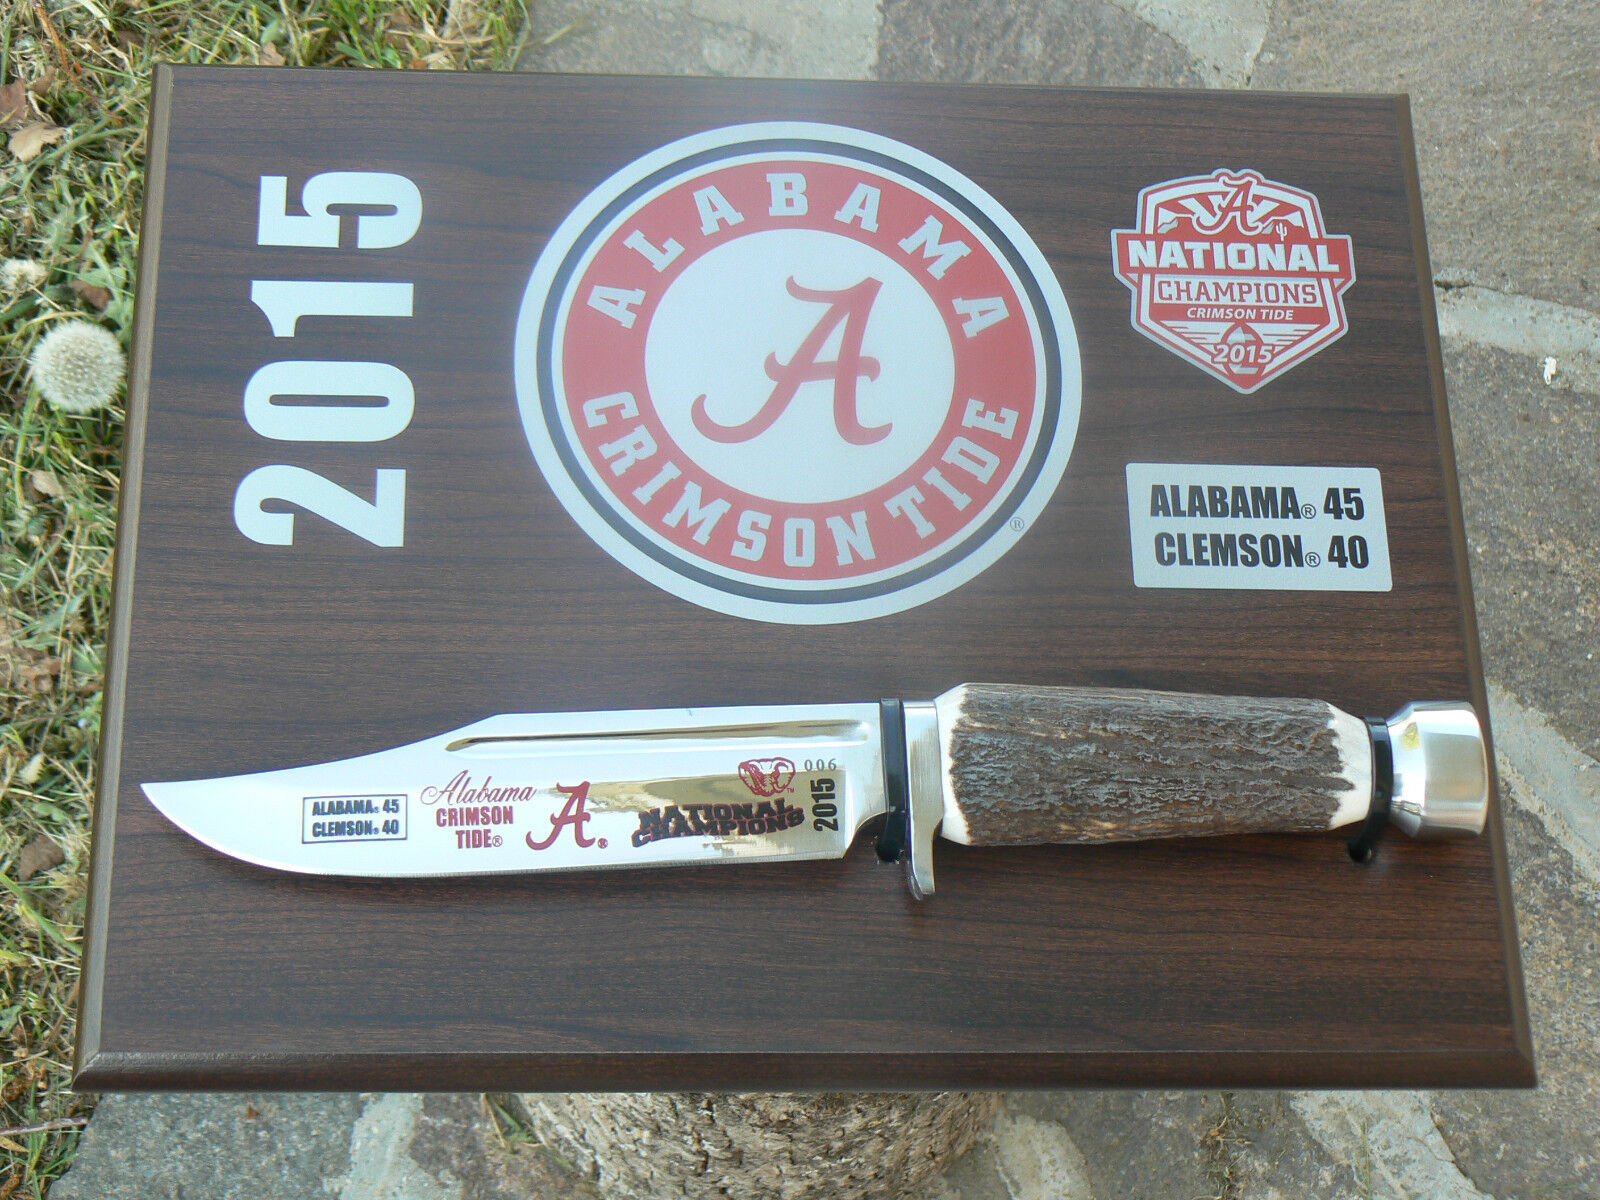 Coltello Hen Hen Hen & Rooster HRAL155017 Alabama Bowie National Champions 2015 knife 7edfc6